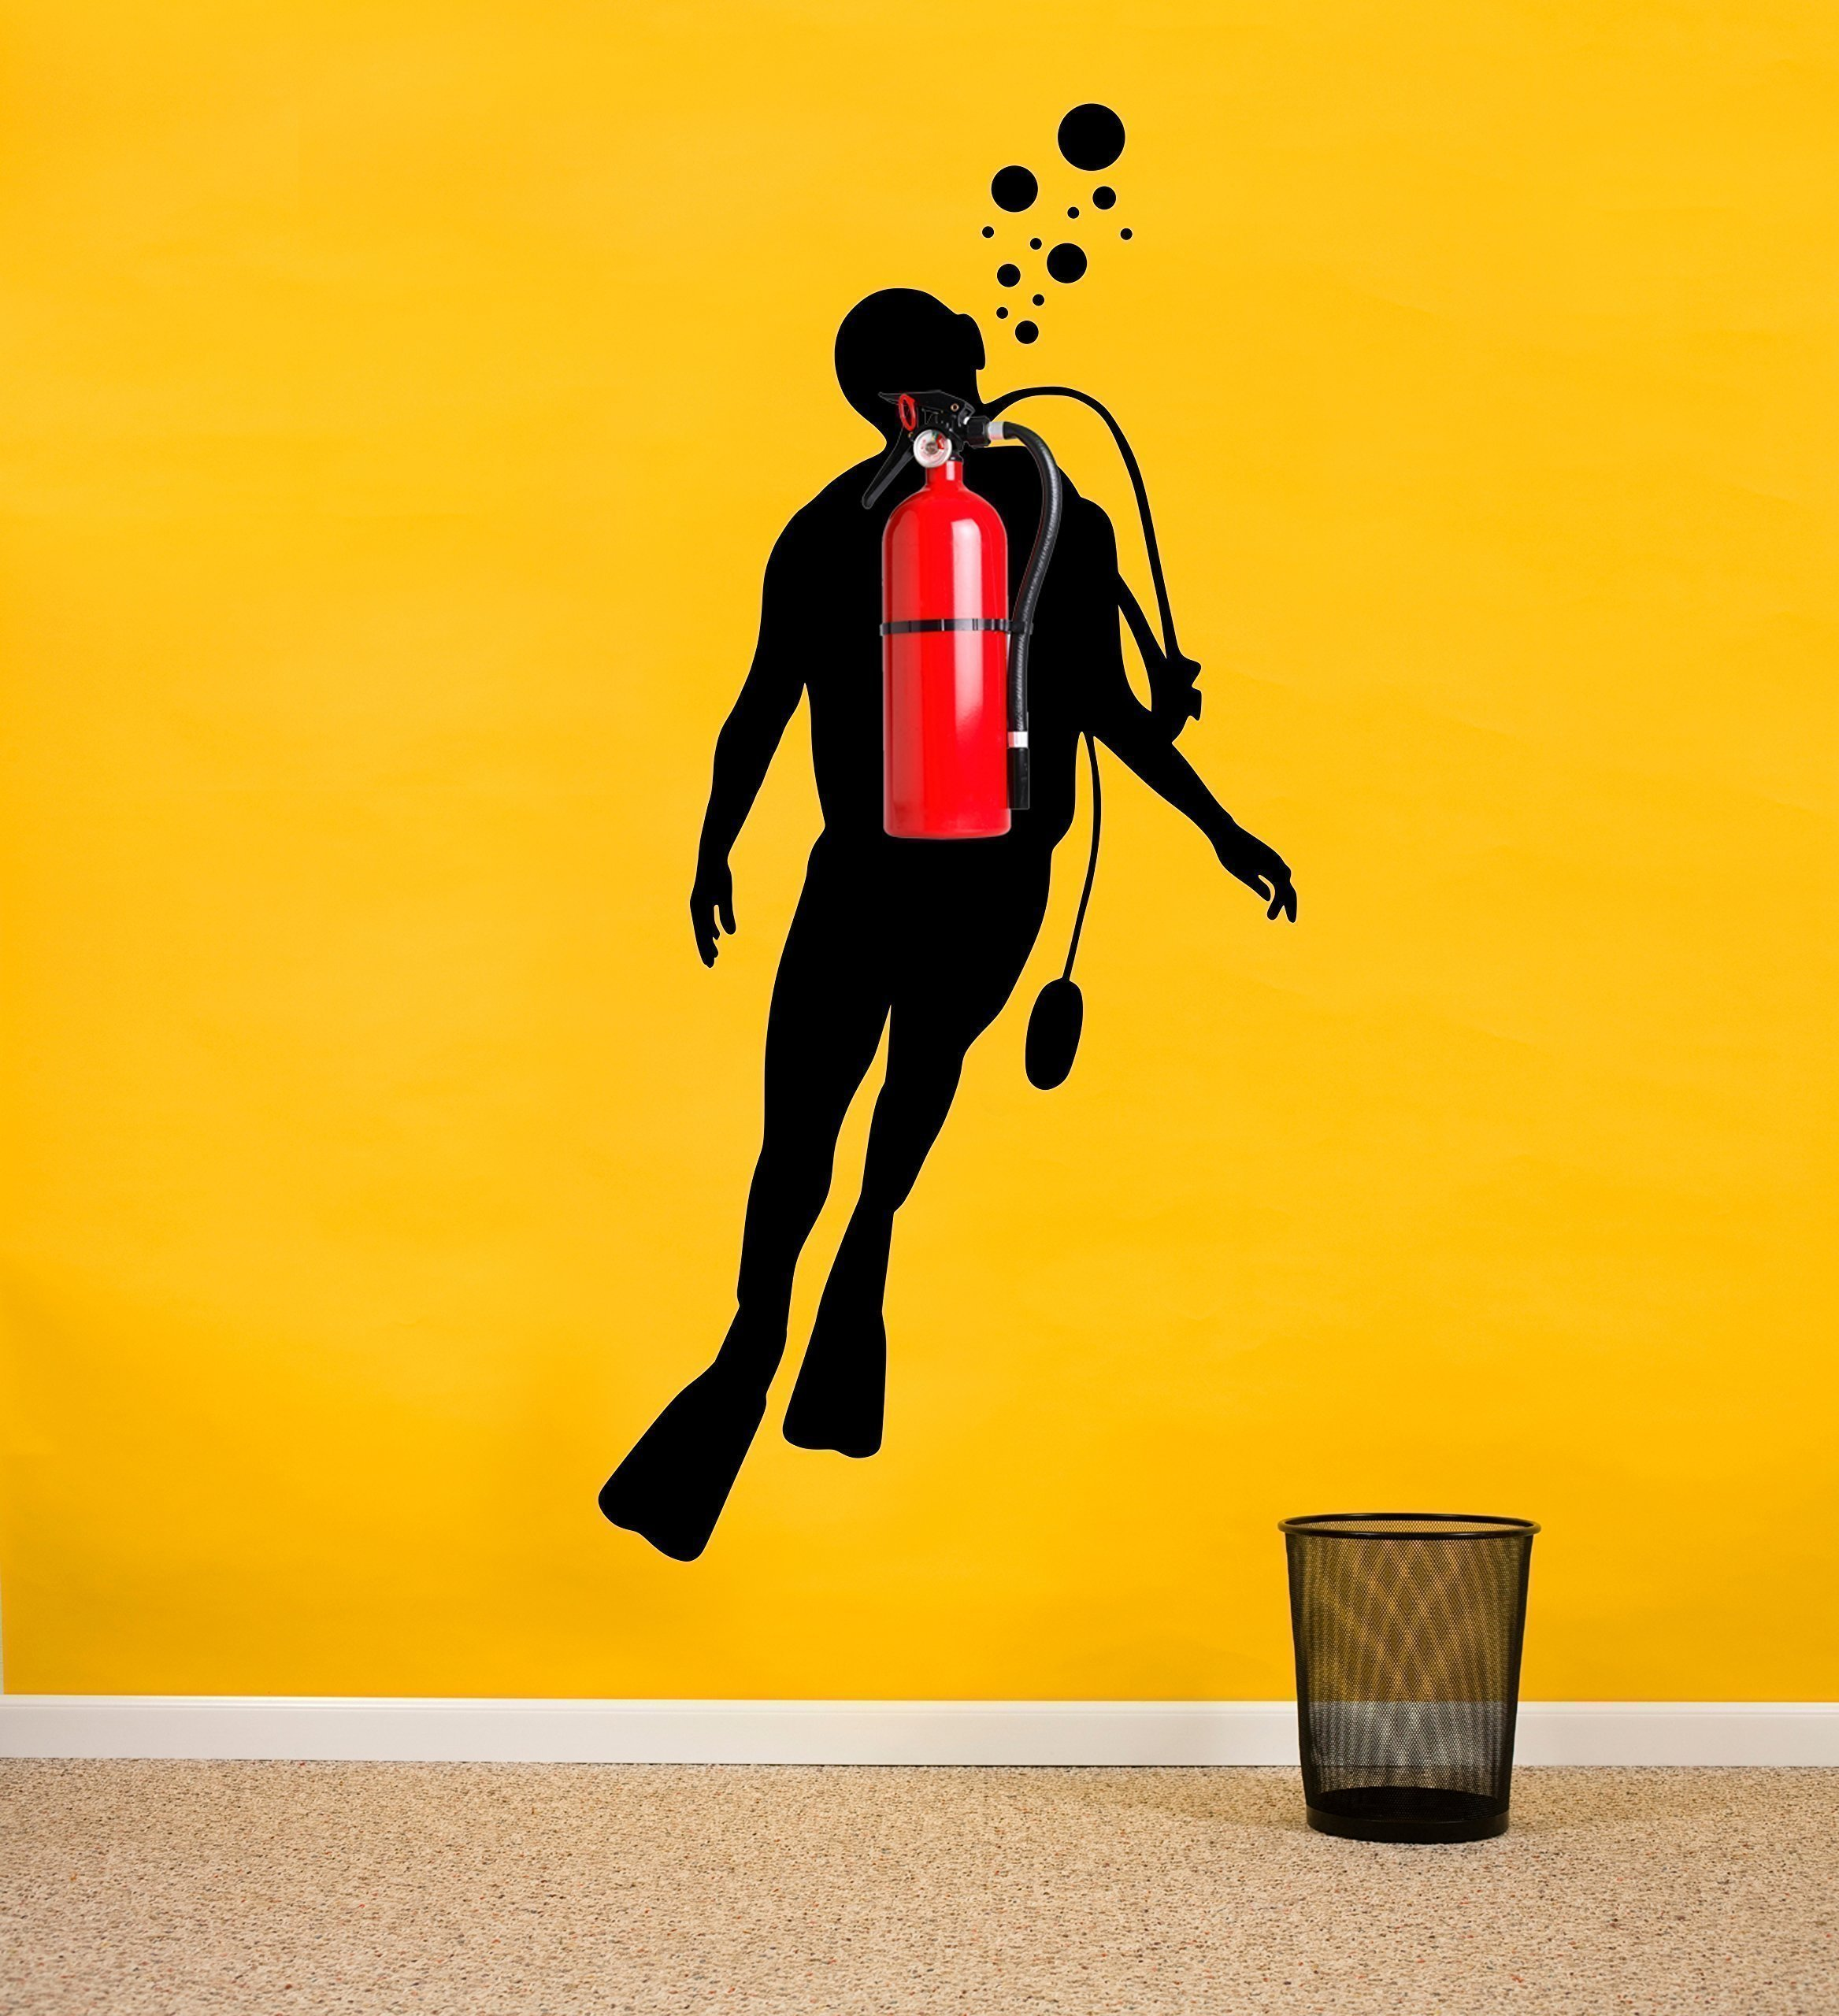 Fire extinguisher funny decor Scuba diver silhouette wall decal | Office Wall Decor Nautical Marine Sticker Creative Idea for offices, warehouses, living rooms, colleges, schools, etc | Handmade